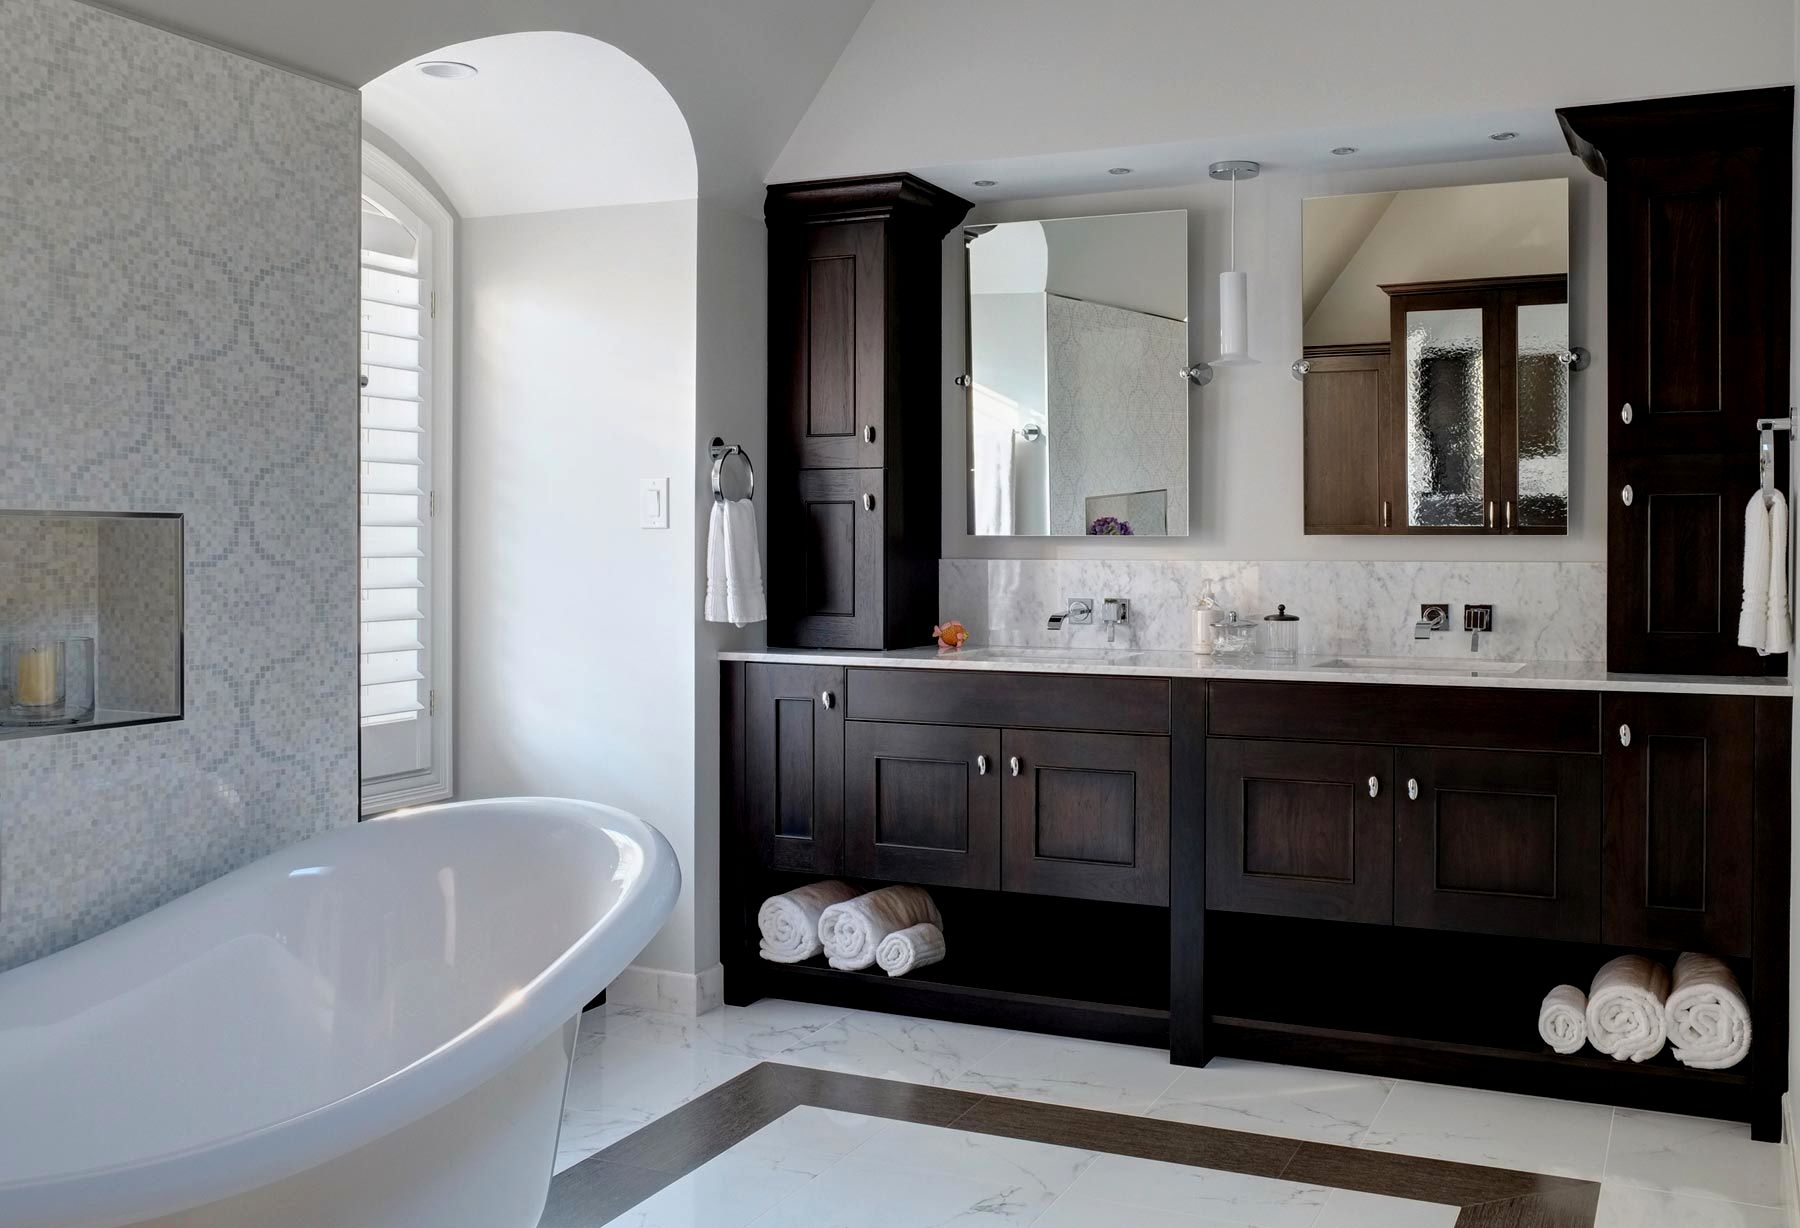 elegant how to remodel a bathroom pattern-New How to Remodel A Bathroom Image